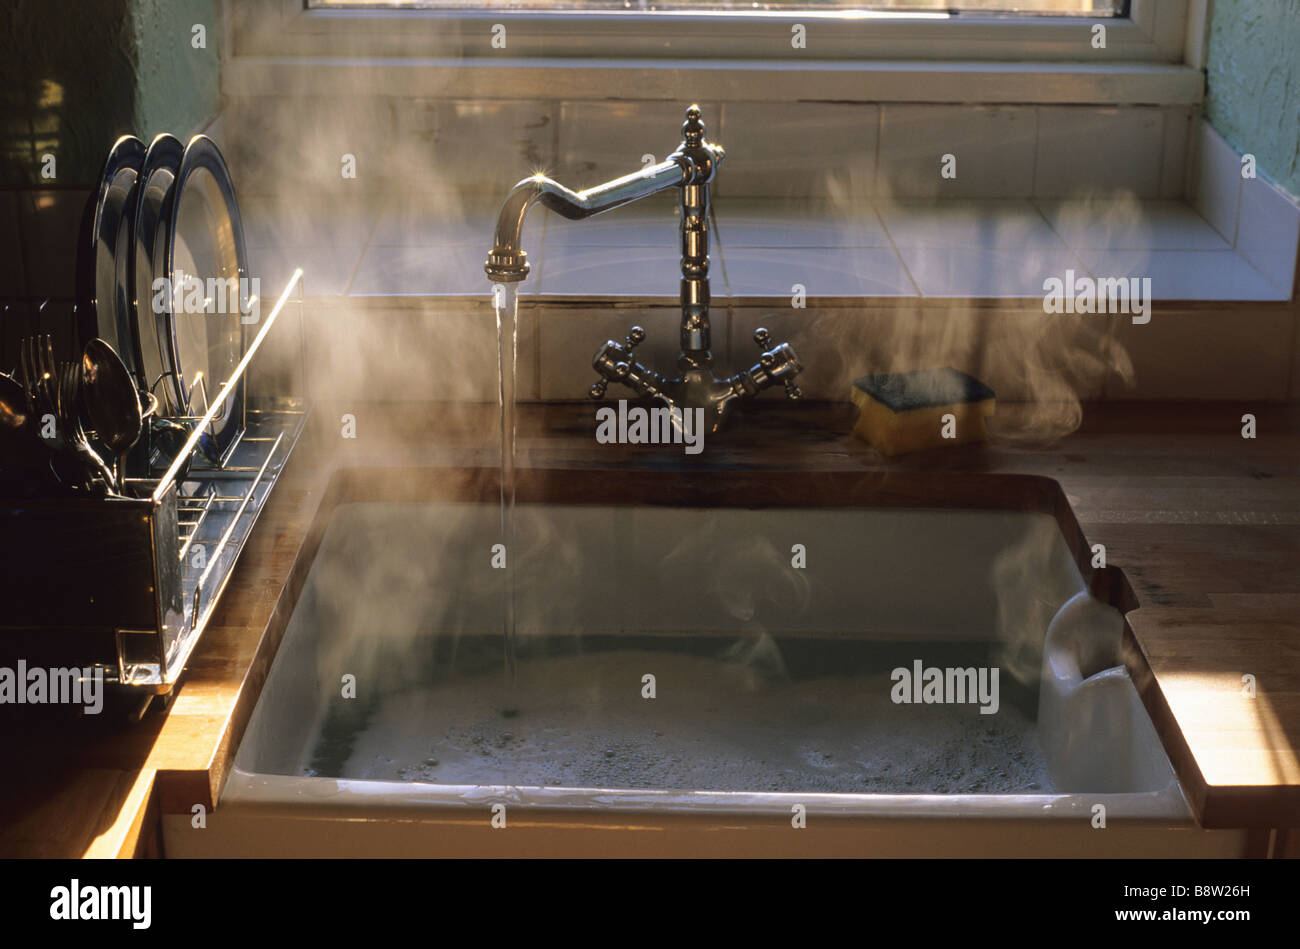 Sunlight Hitting Steam Rising From Hot Washing Up Water In Kitchen ...